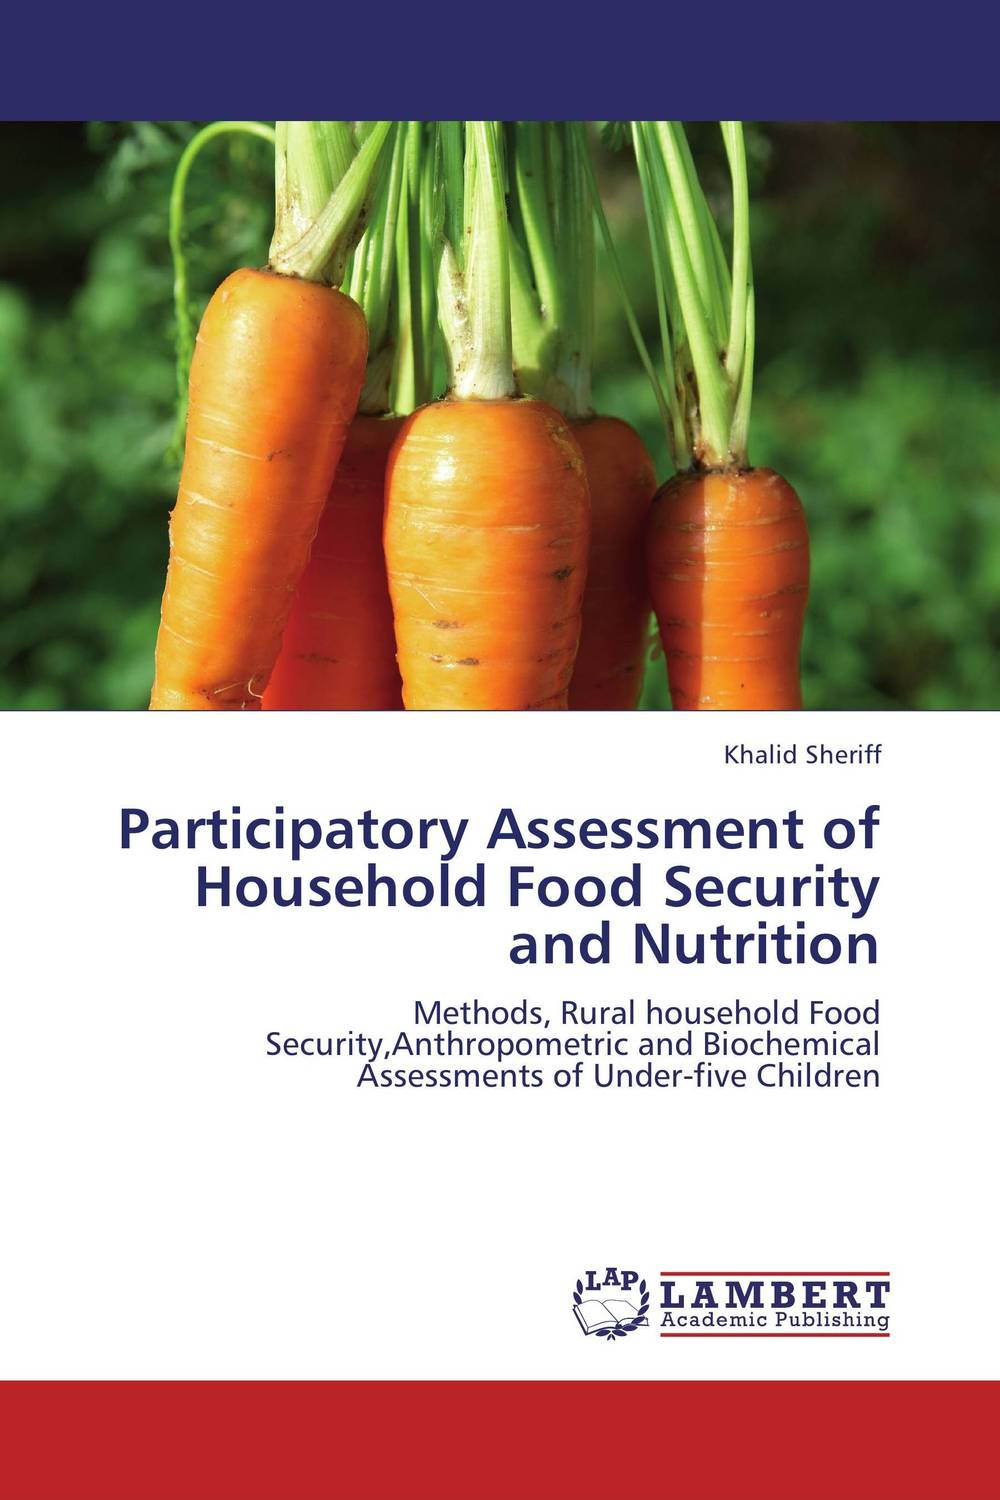 Participatory Assessment of Household Food Security and Nutrition agatha daniel and charles olungah women s indigenous knowledge in household food security